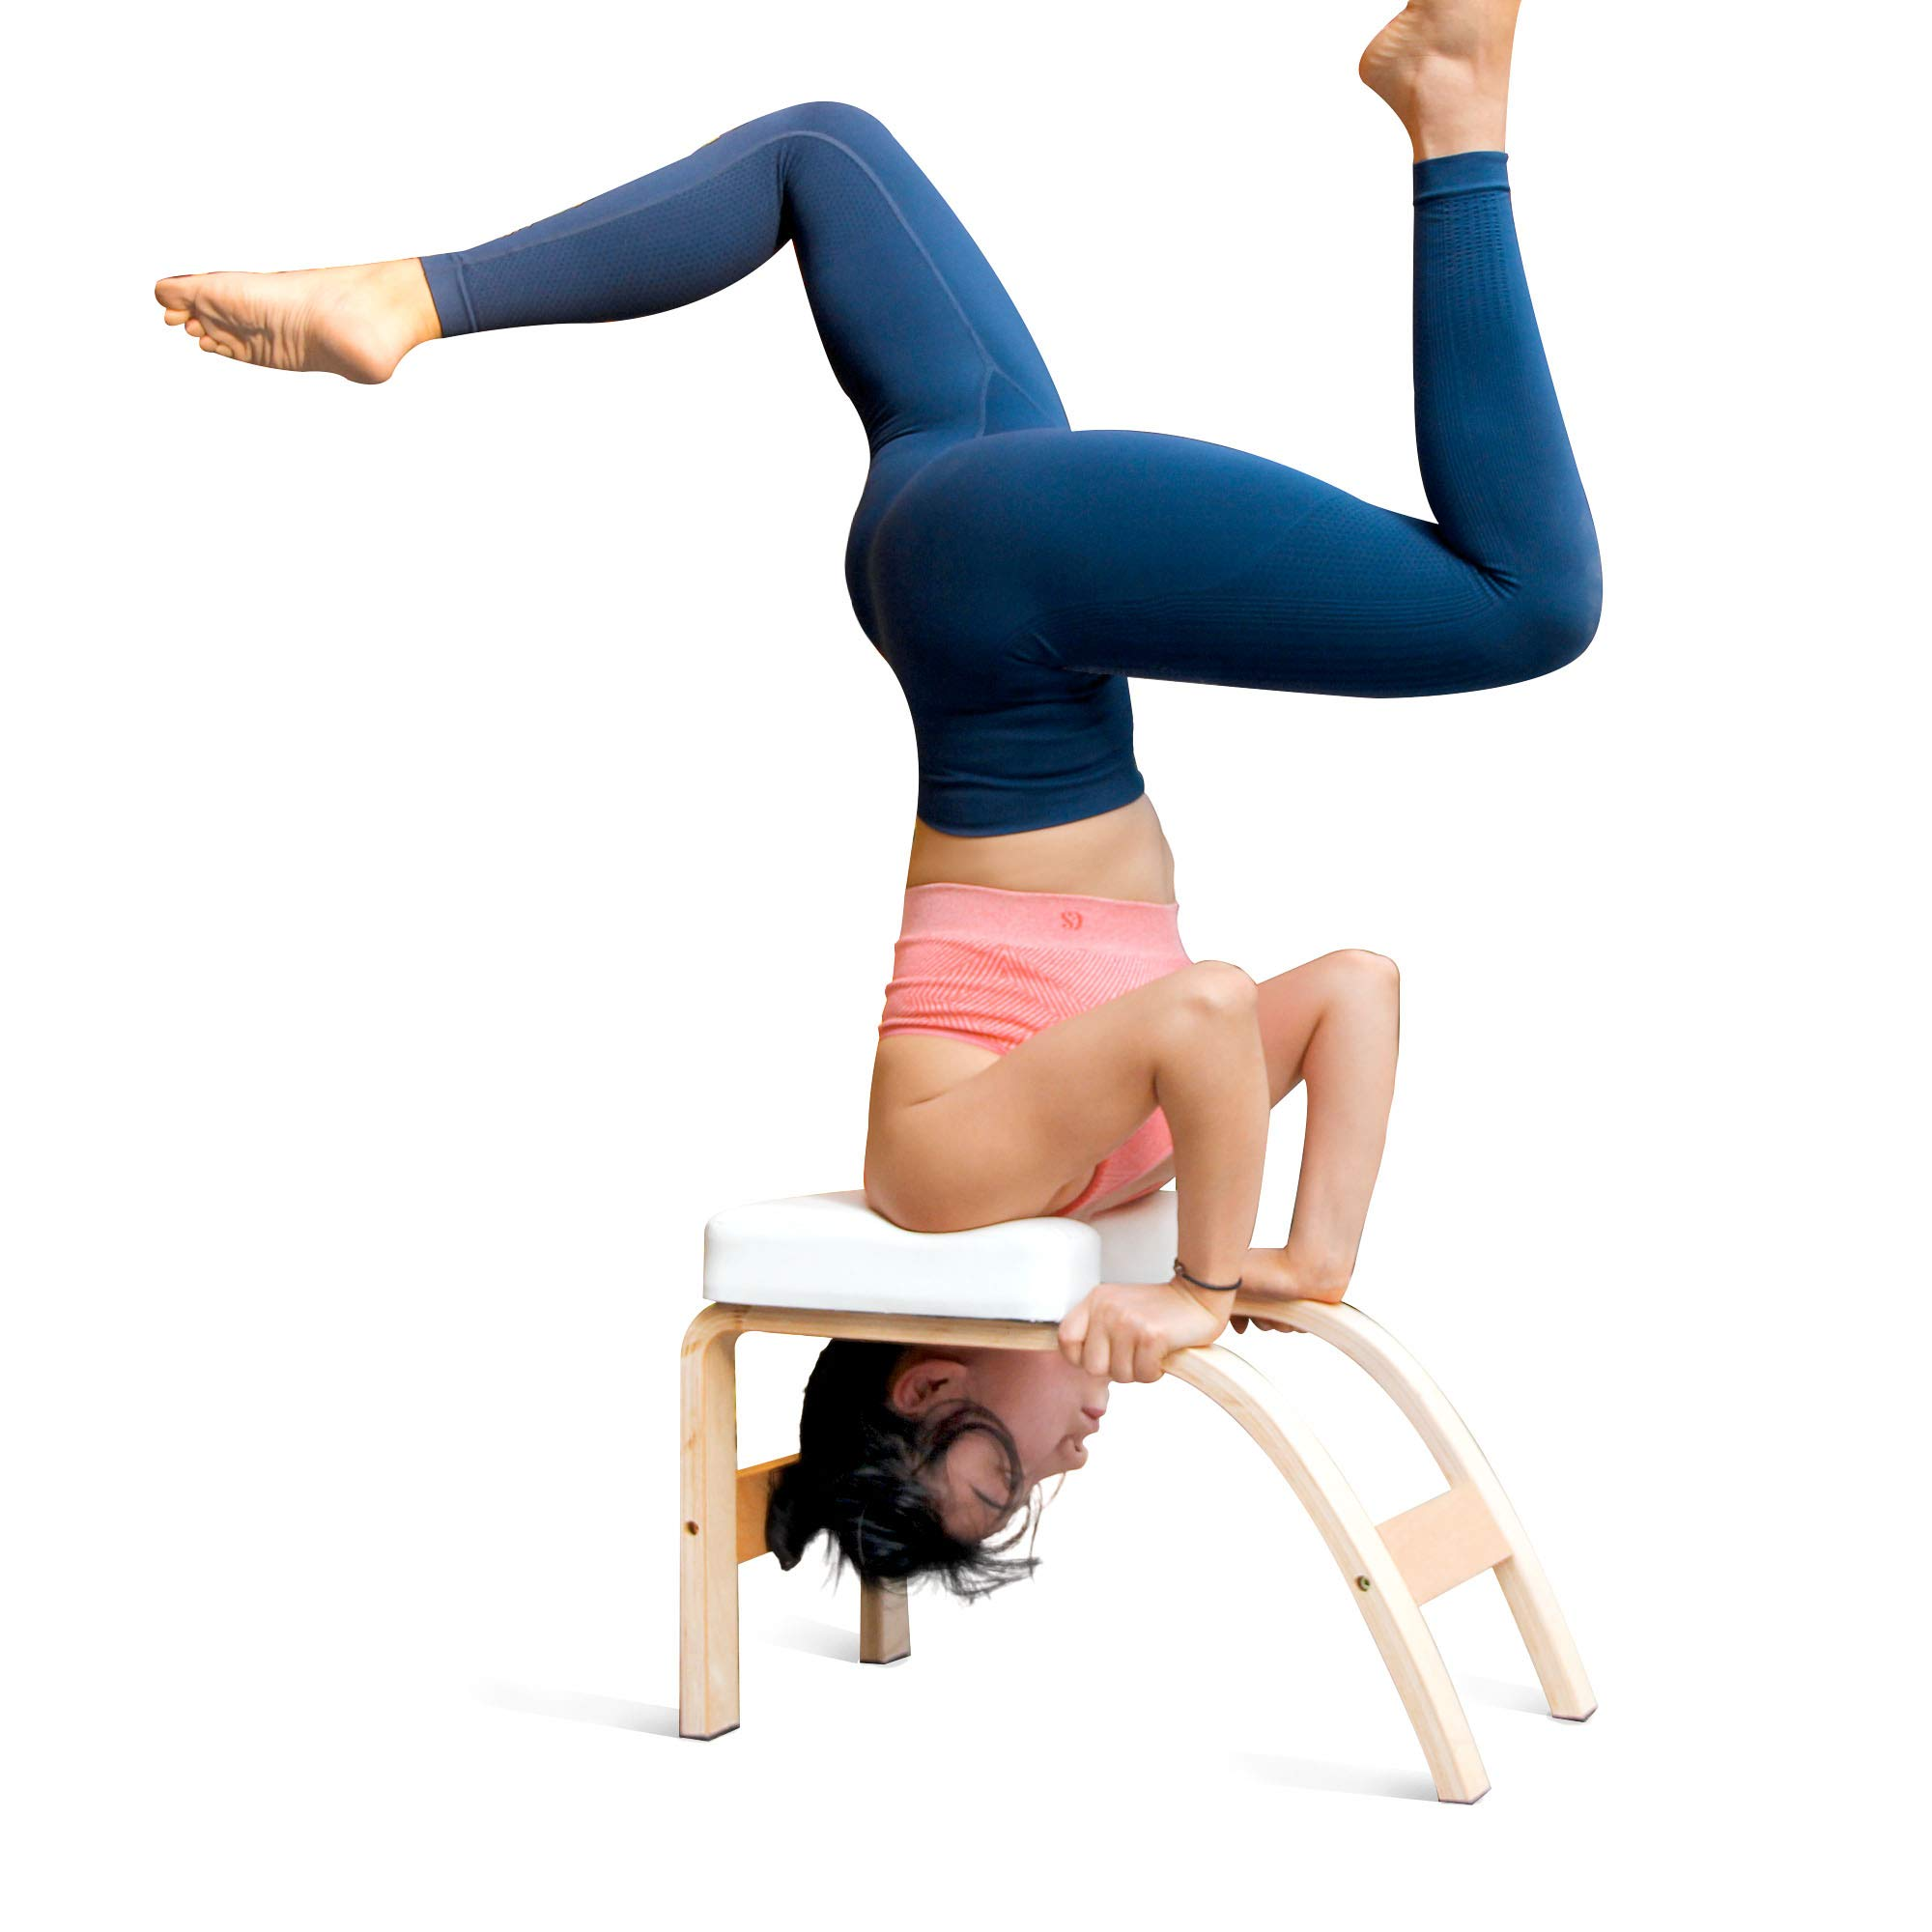 THUNDESK Yoga Inversion Bench,Yoga Headstand Prop,Upside Down Chair for Feet Up and Balance Training, Core Strength Building, Yoga Asana Practice Chair (White)